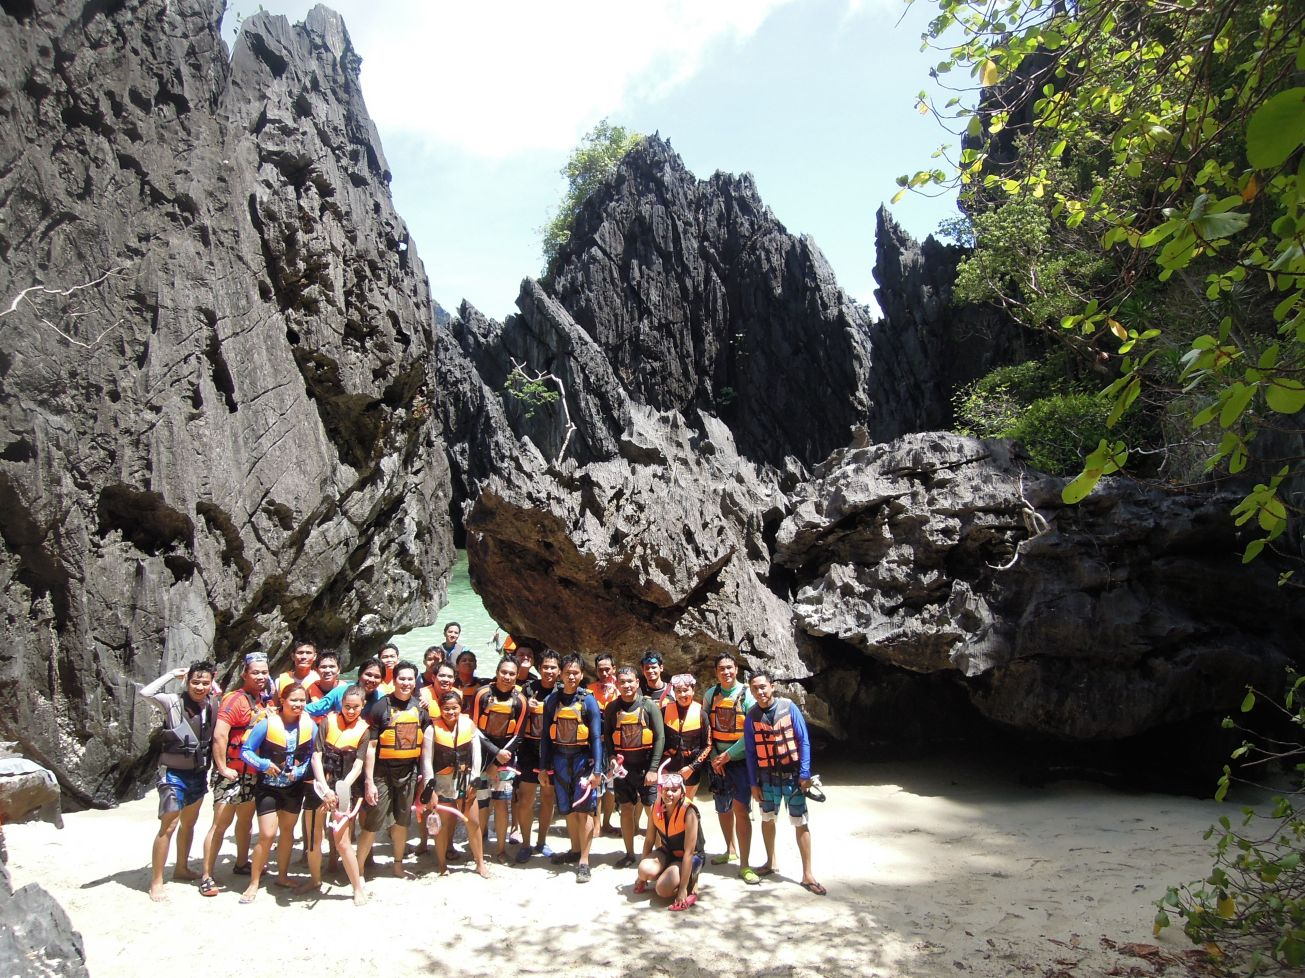 Rock of Ages (If you know what I mean) - Mary Grace Abenion, El Nido Palawan; May 2015